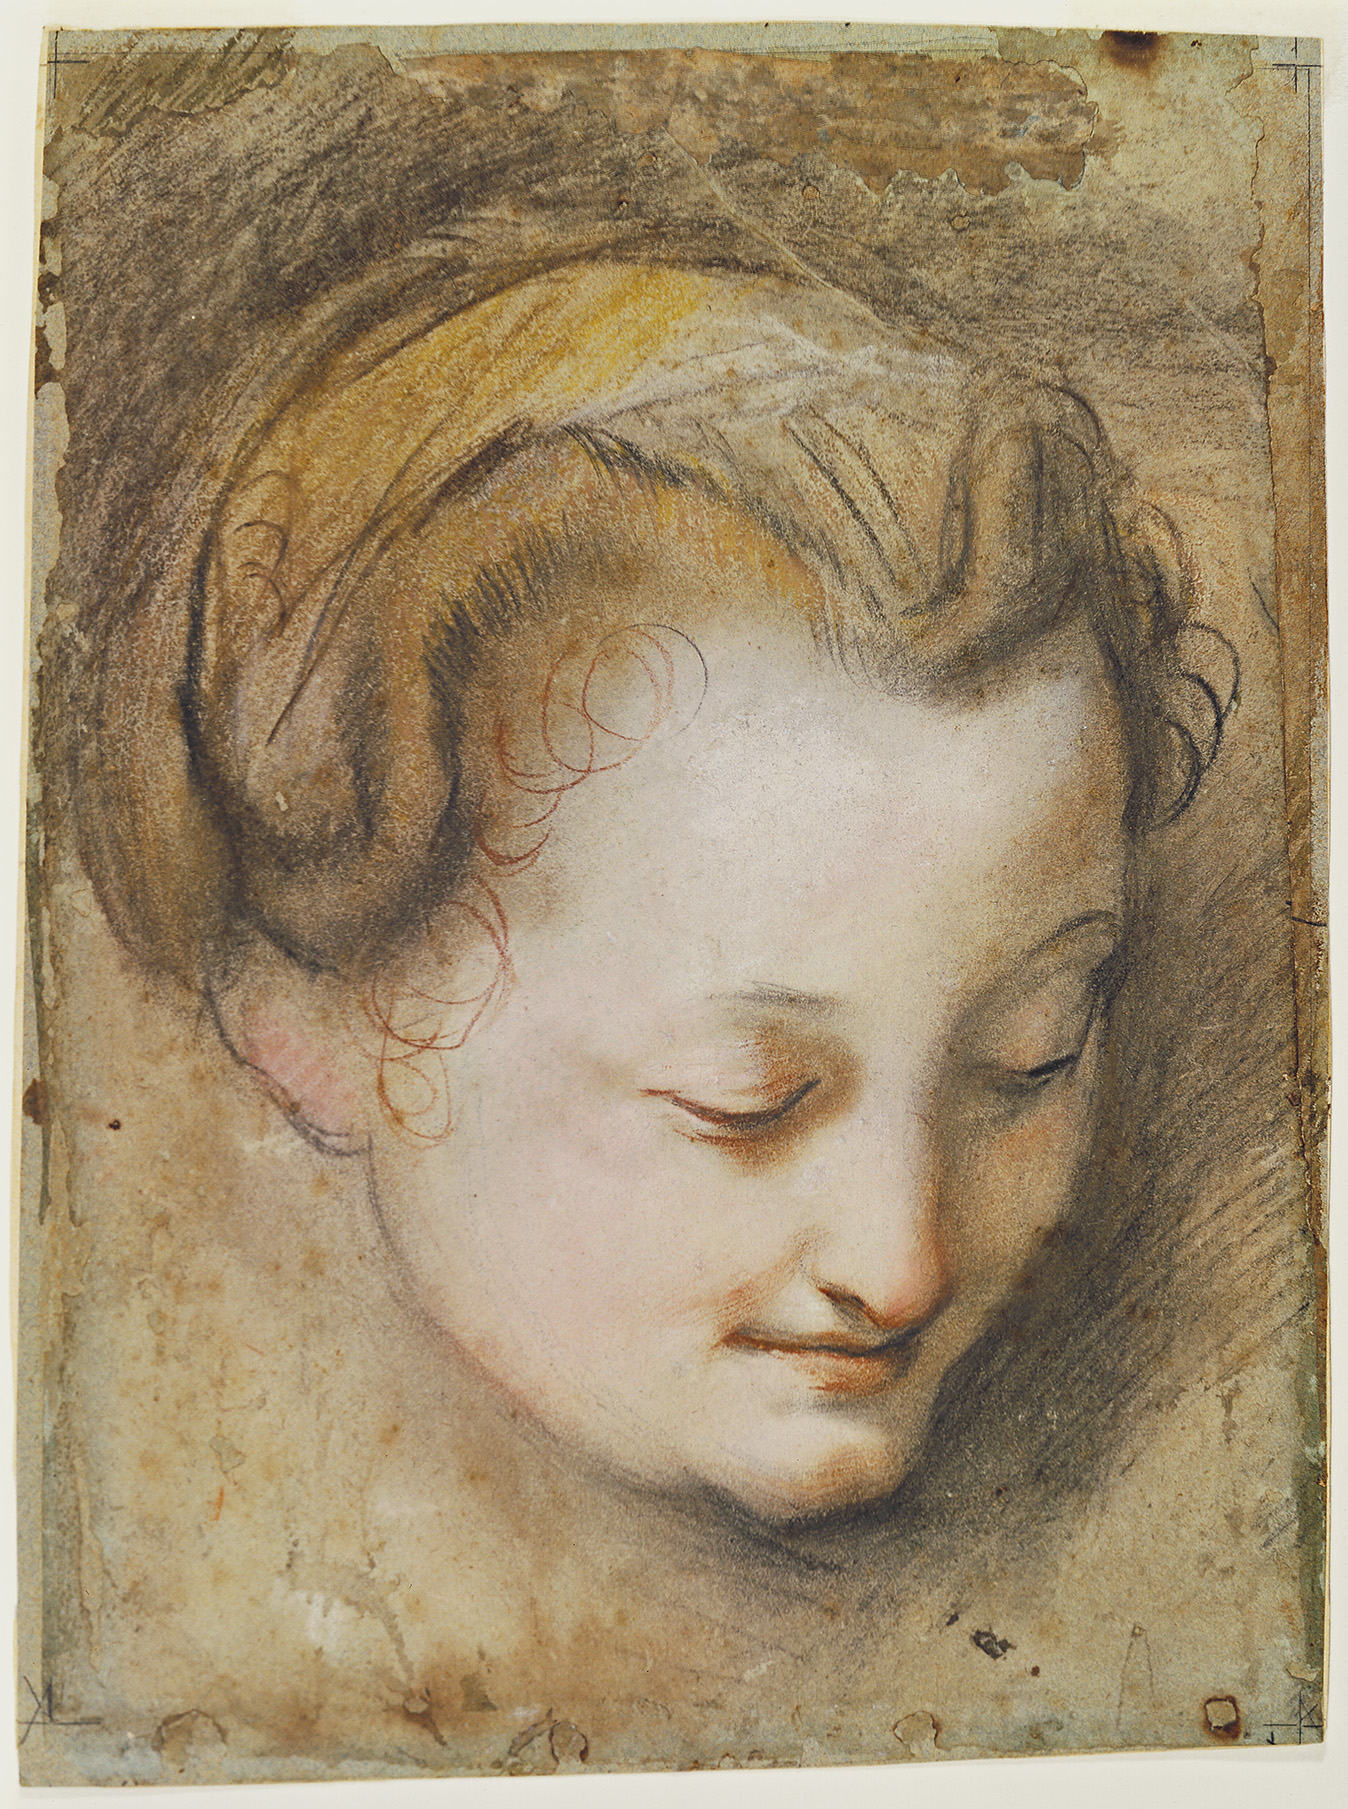 Barocci, Head of a Woman